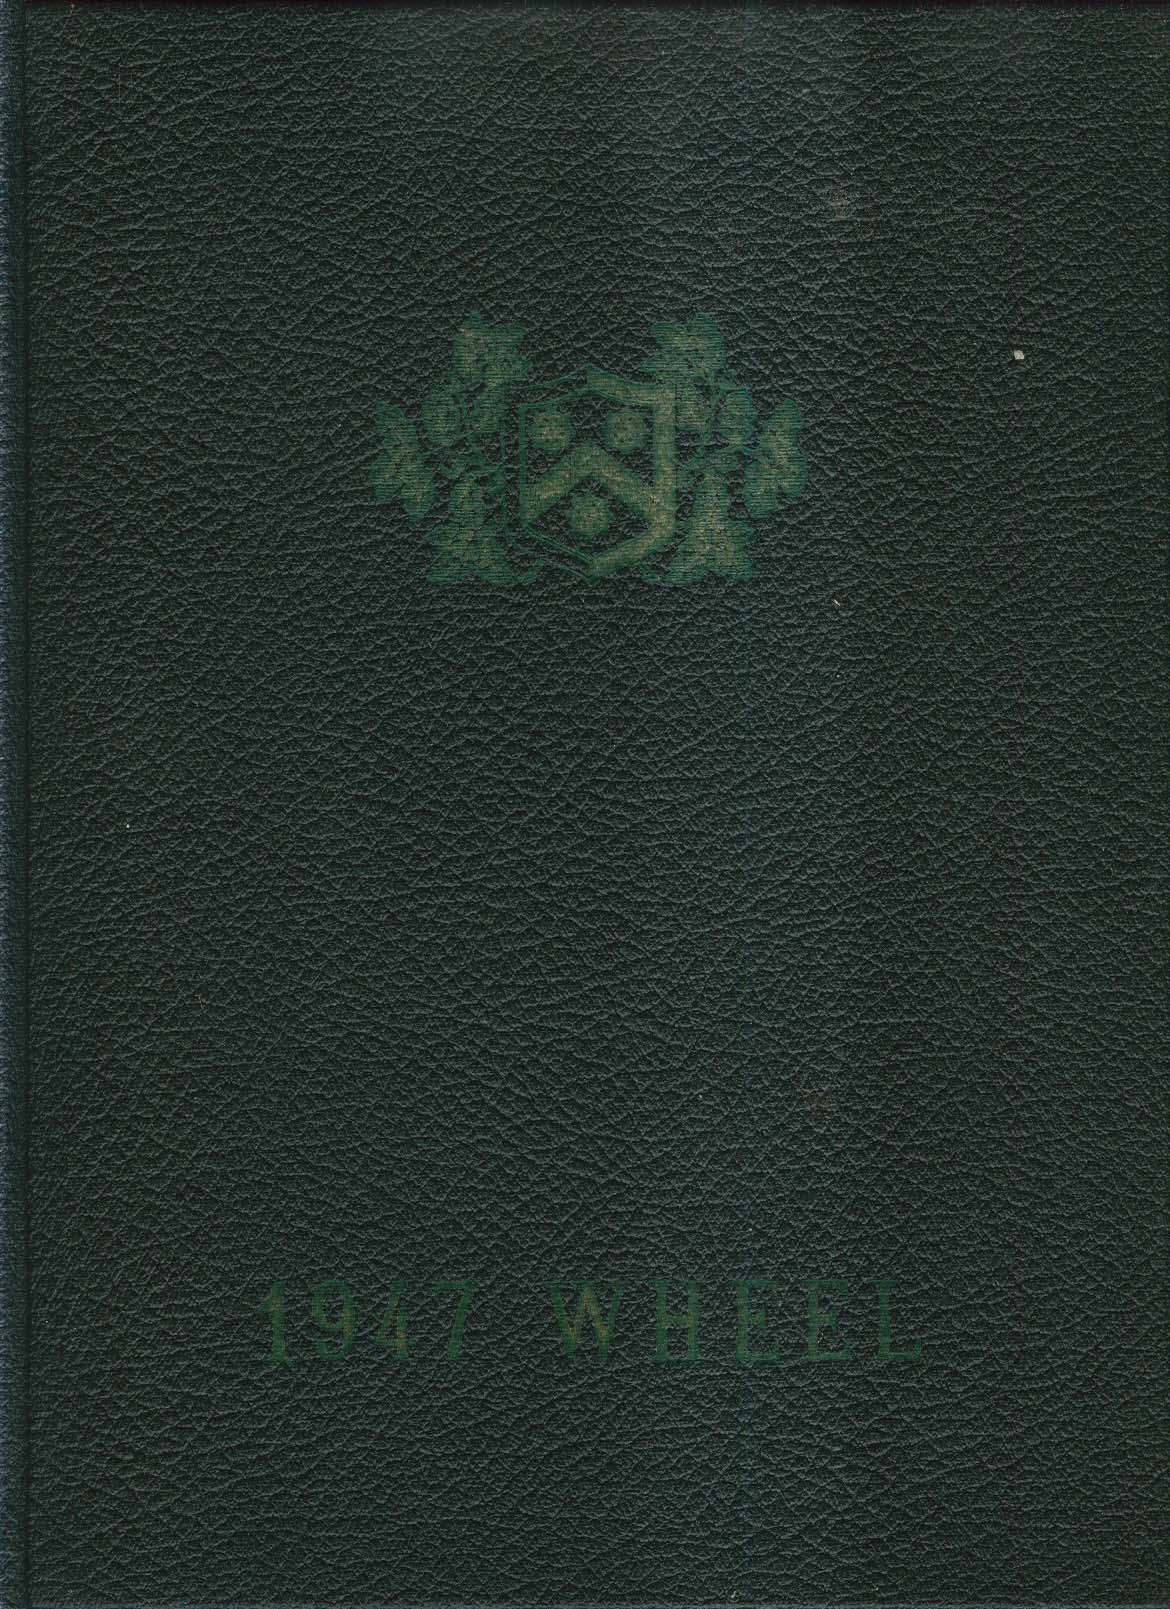 Image for 1947 Wheel Wheelock College Boston Massachusetts MA Yearbook